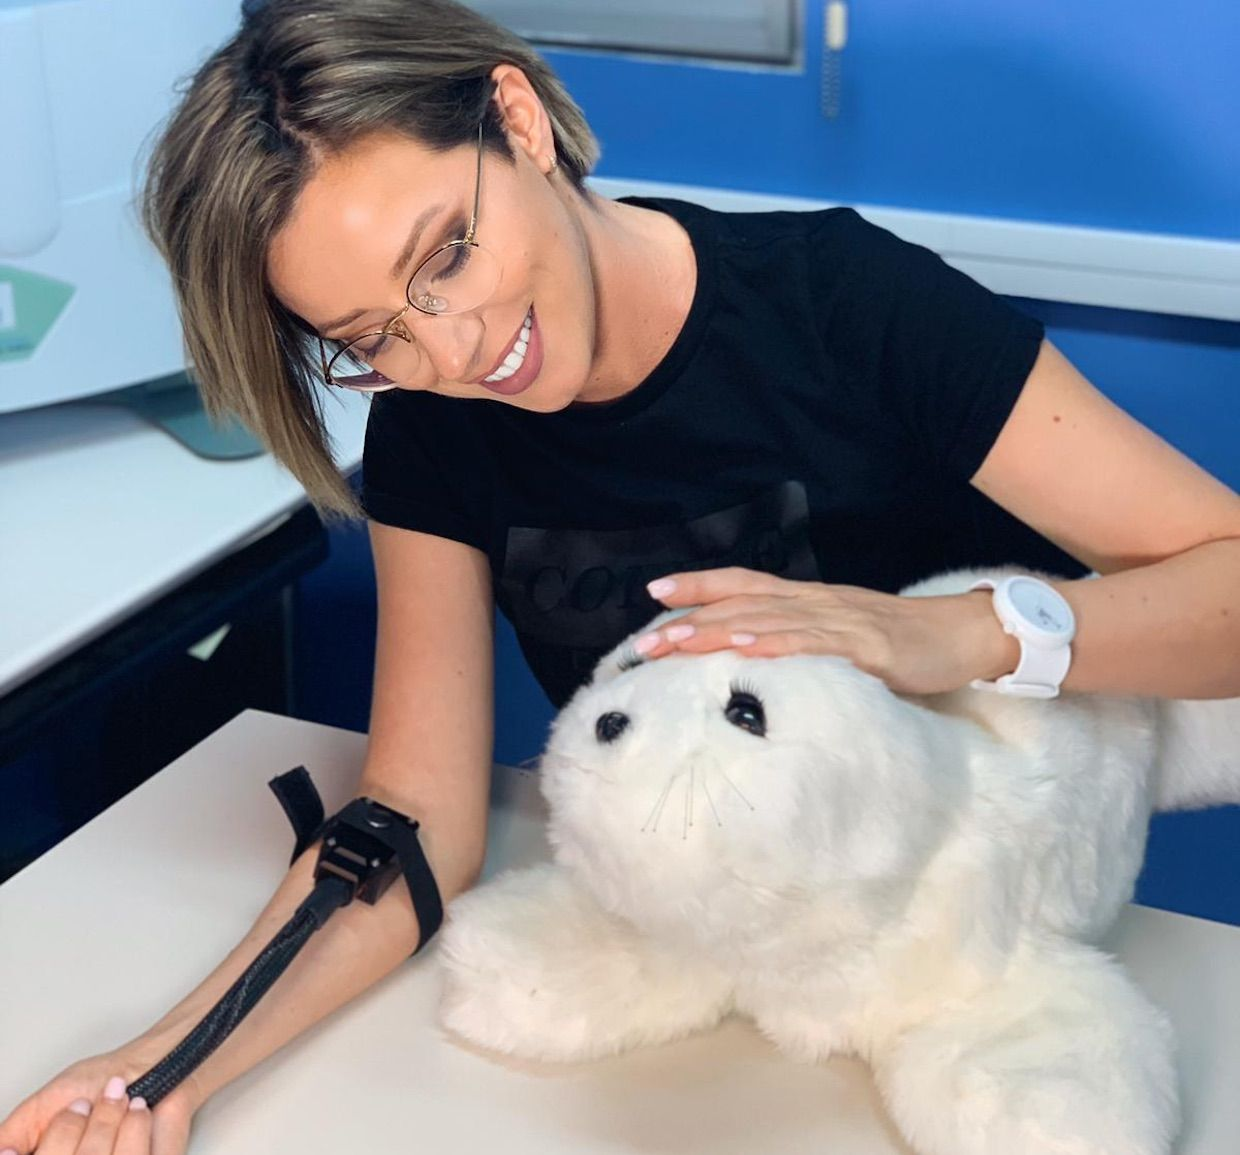 Cuddling Robot Baby Seal Paro Proven to Make Life Less Painful